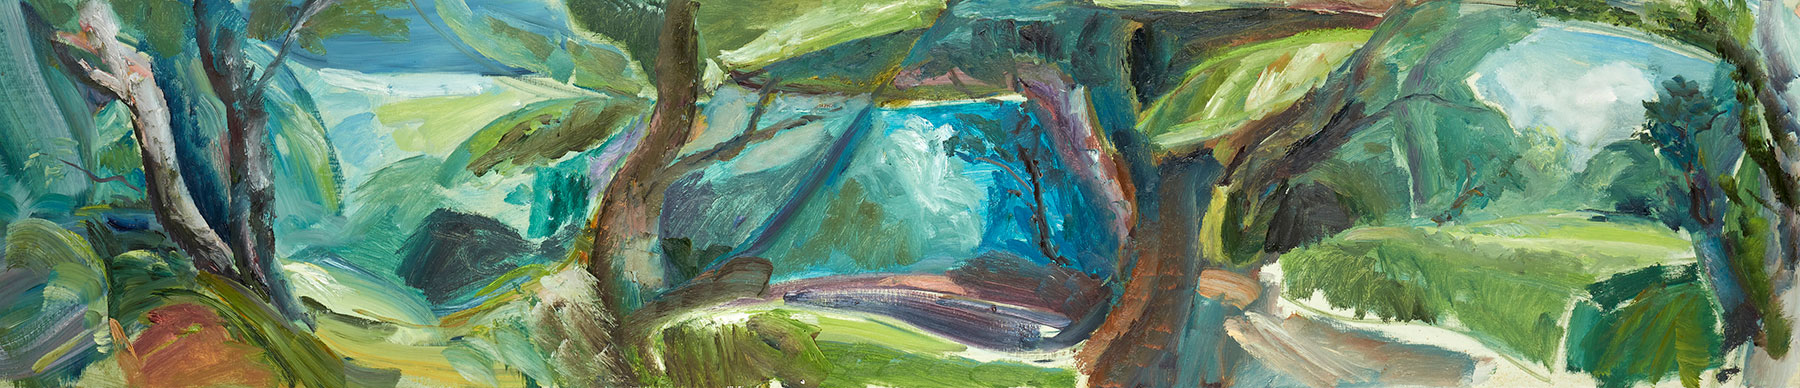 July Woodland Enclosures, 1983, 46 x 211 cm, oil on canvas